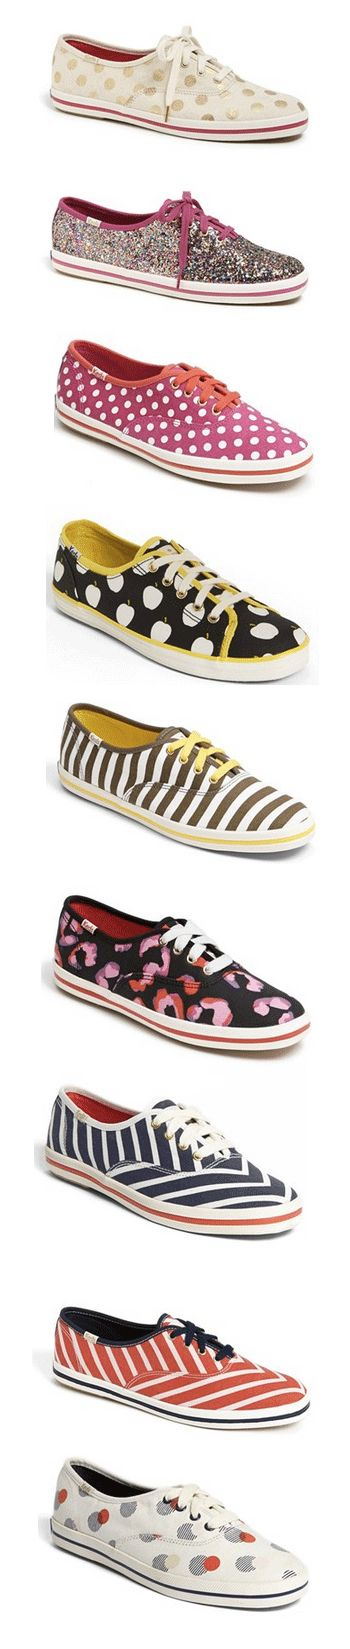 Keds for kate spade new york - so many pretty designs! Which one is your favorite? rstyle.me/...